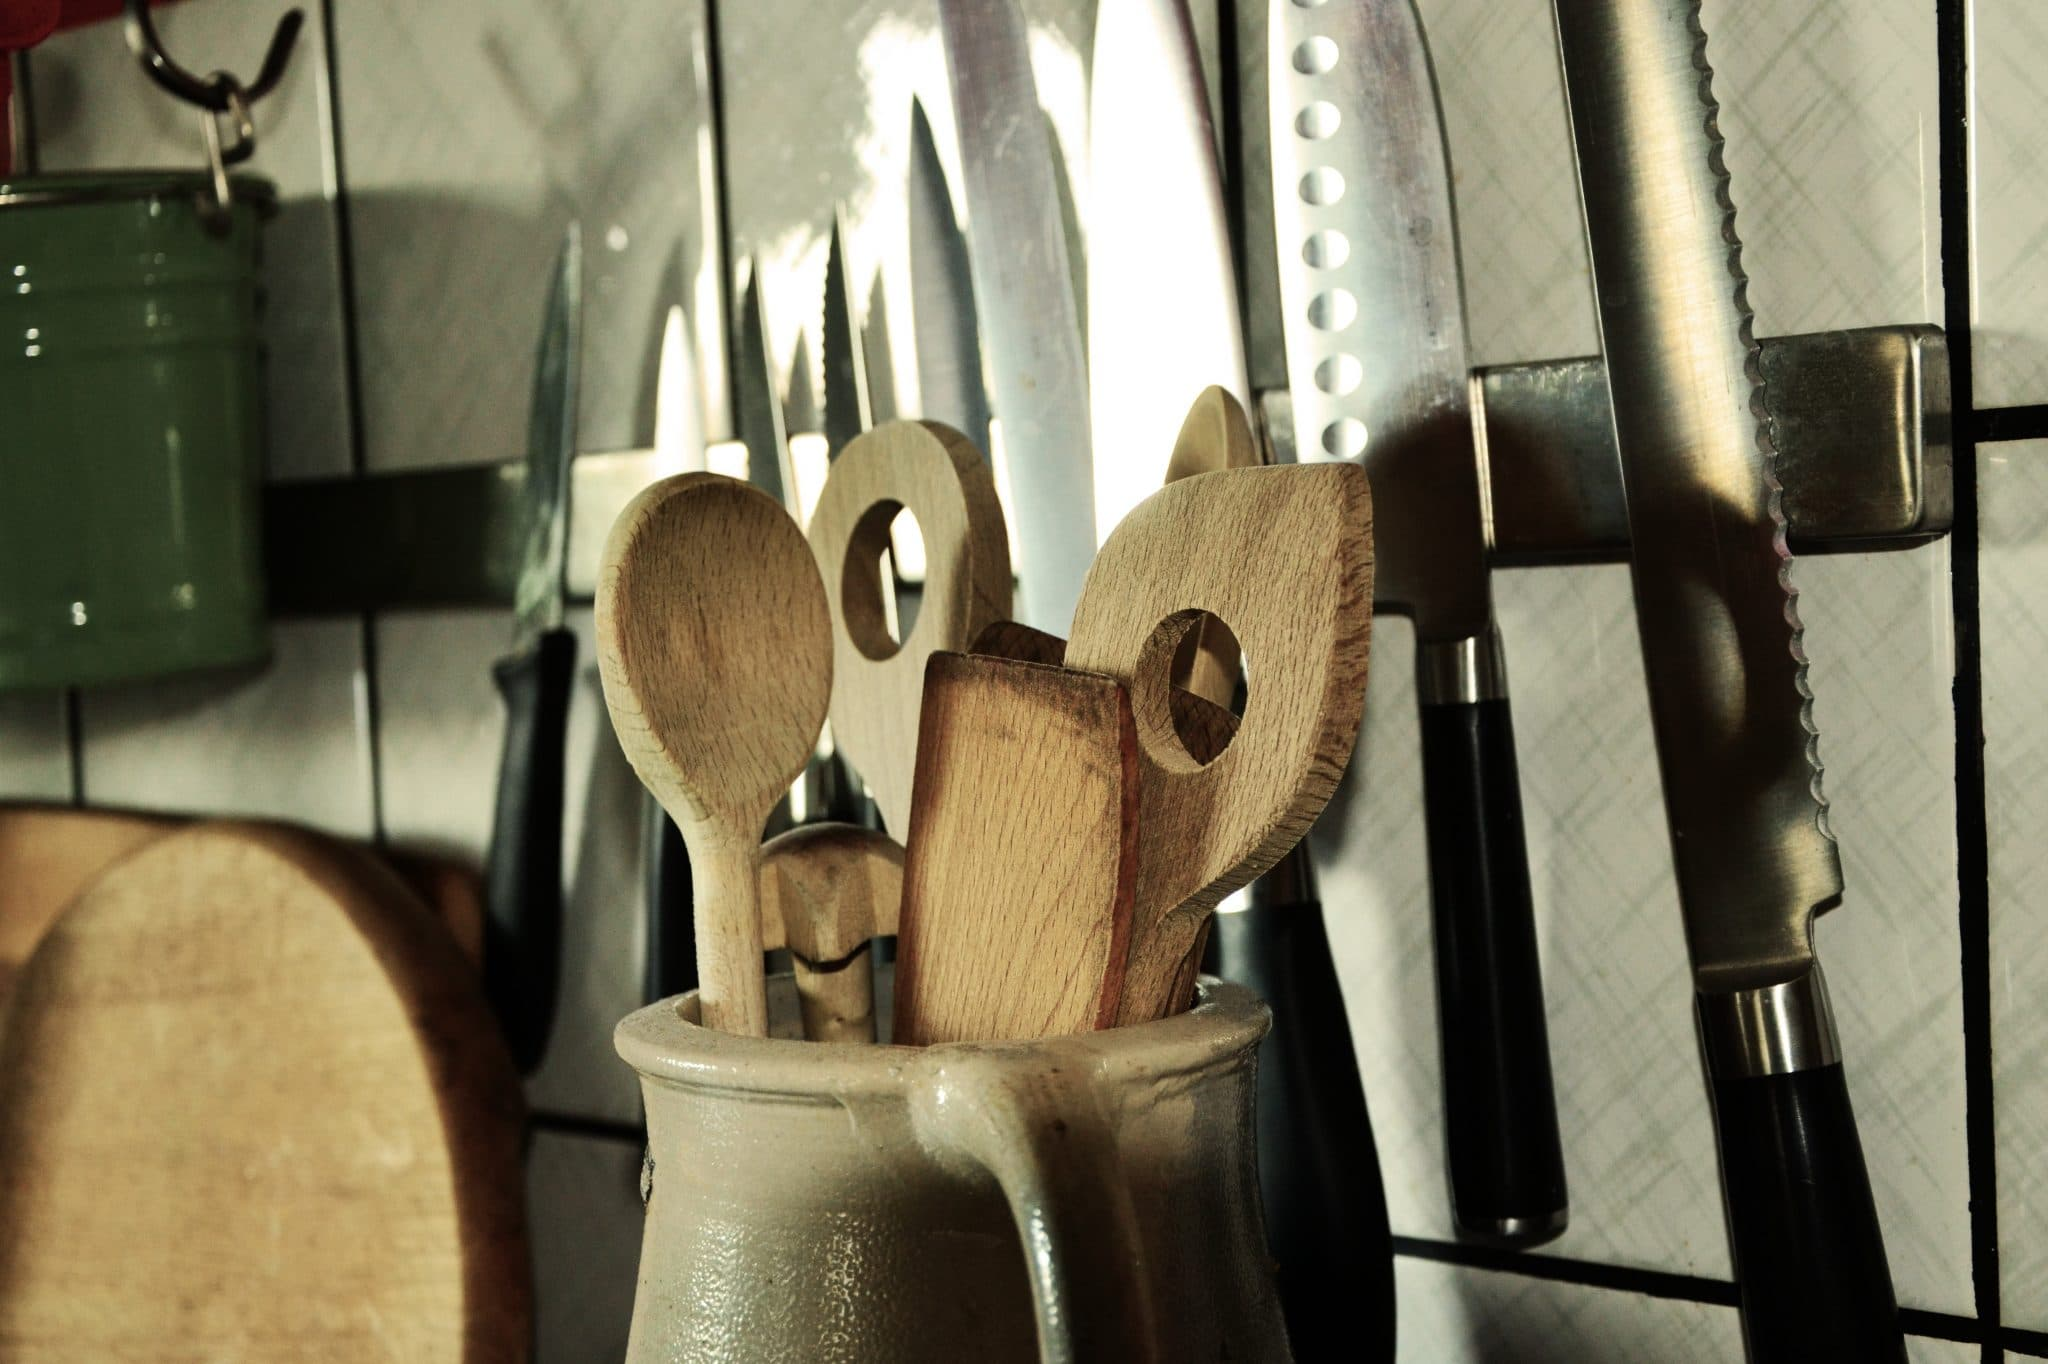 german cutlery brands, german cutlery set